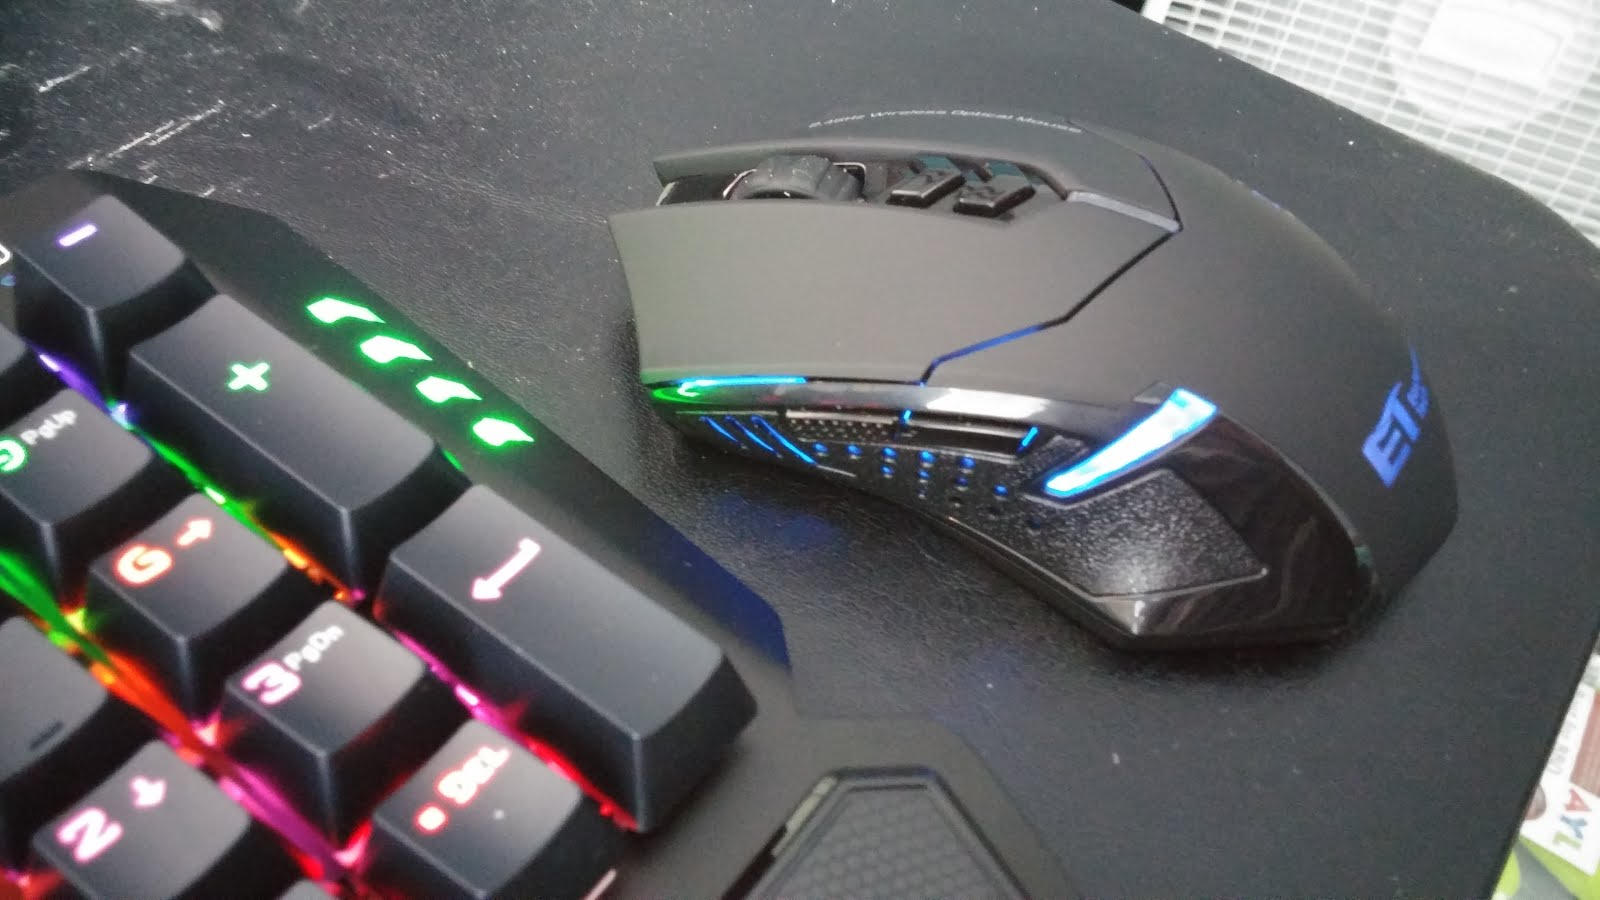 How to configure a gaming mouse buttons in Linux using a GUI